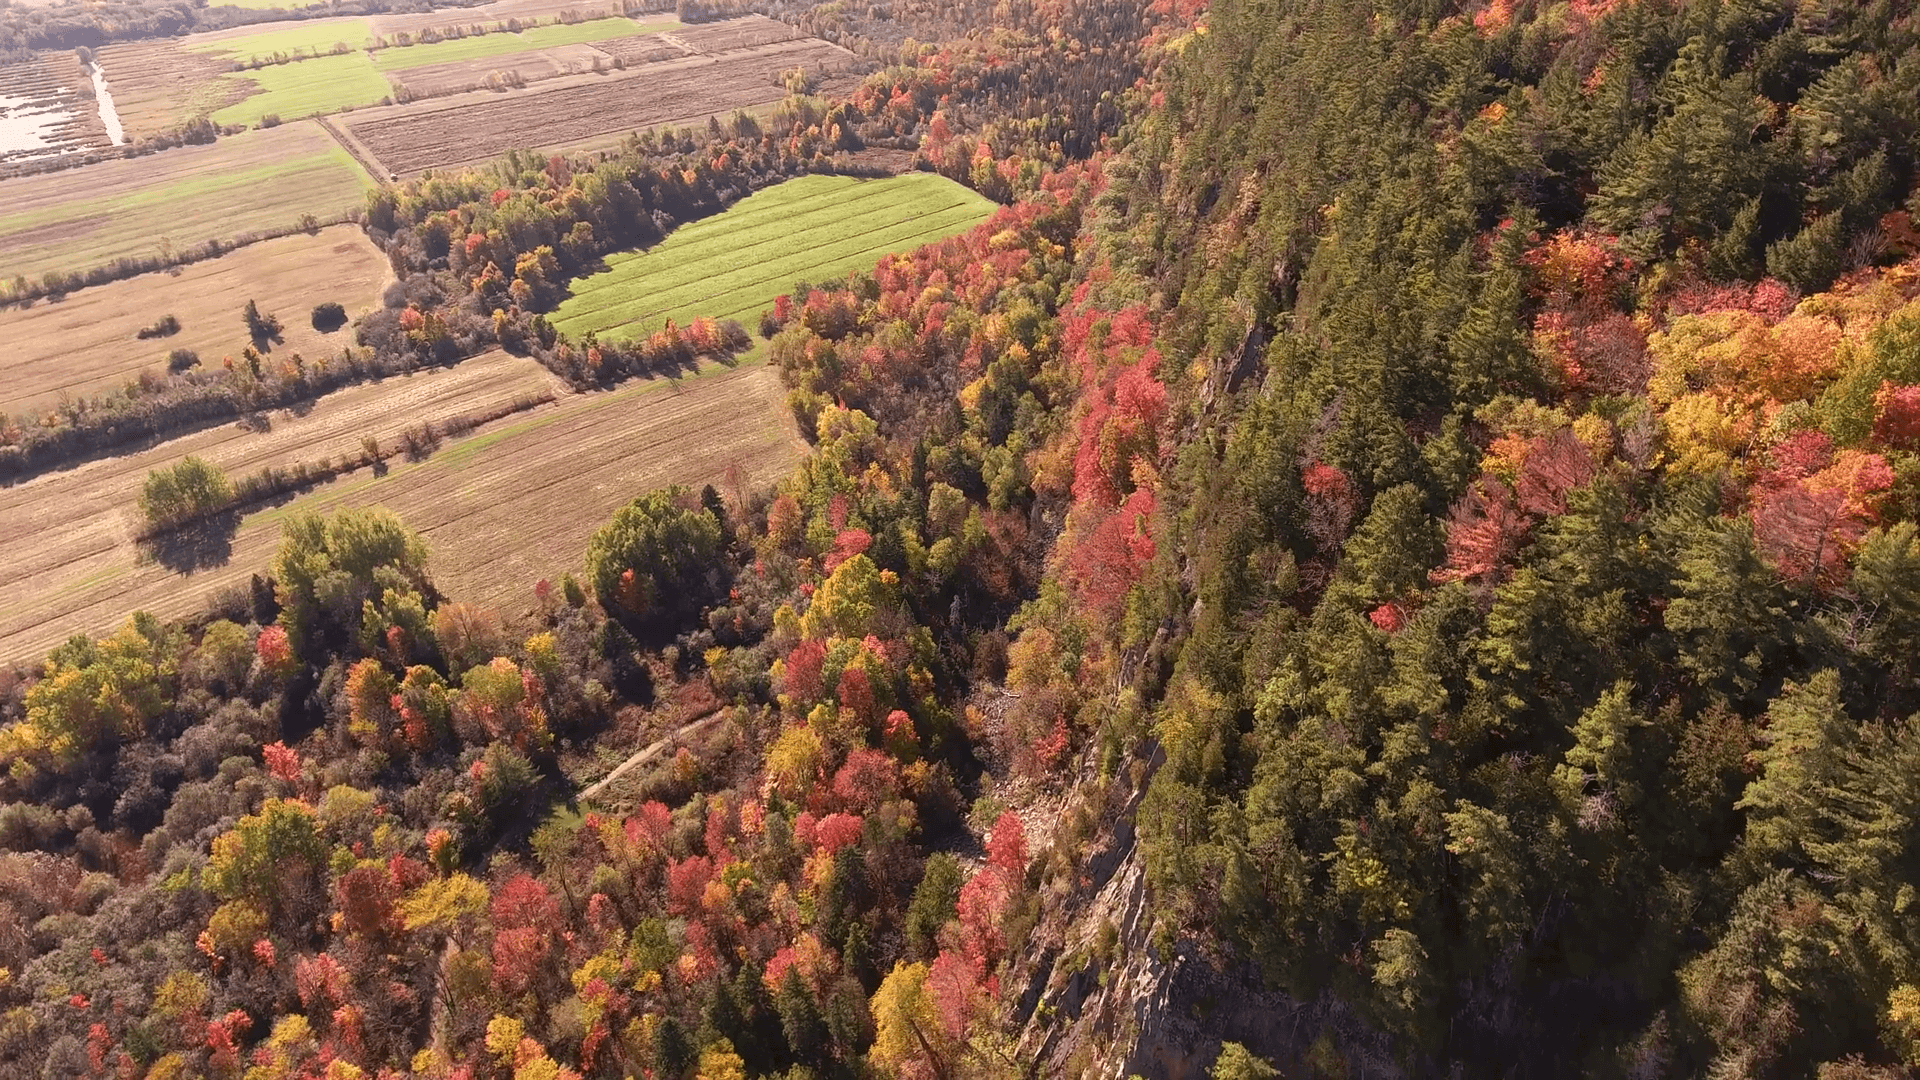 A big rocky cliff which is near agricultural fields. Filmed during an autumn sunset in Canada. Stock Video Footage